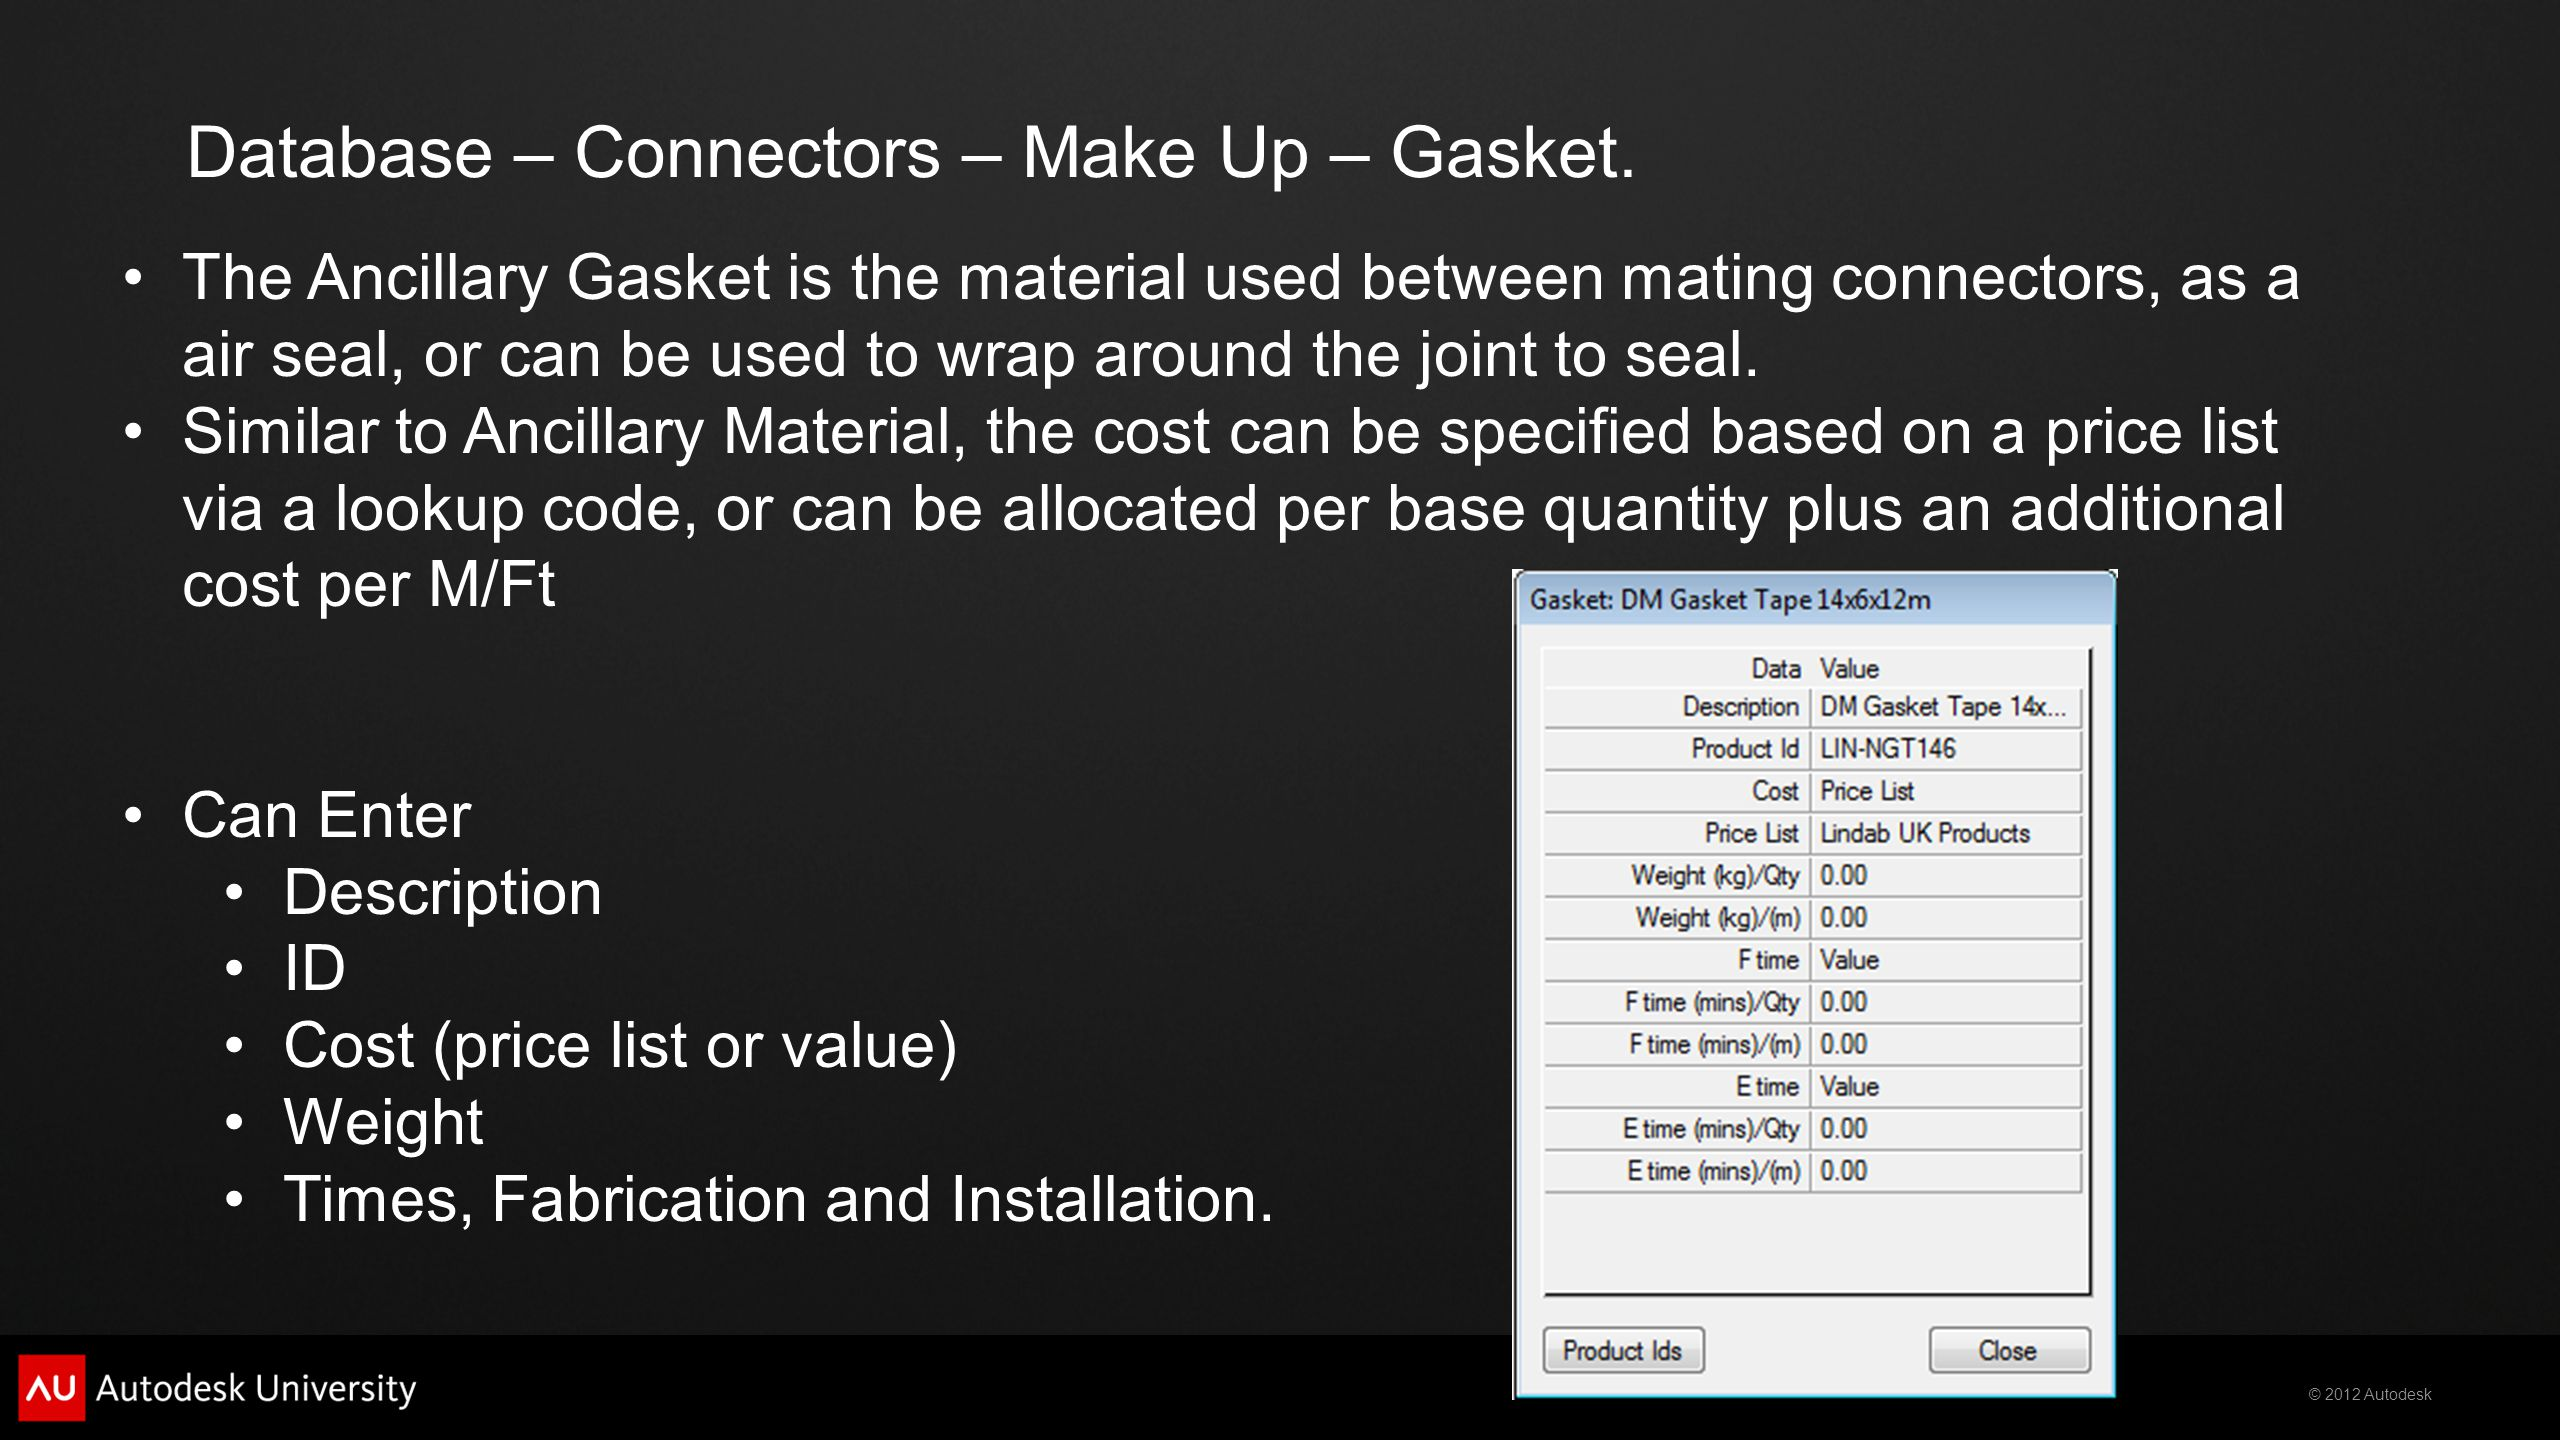 © 2012 Autodesk Database – Connectors – Make Up – Gasket.